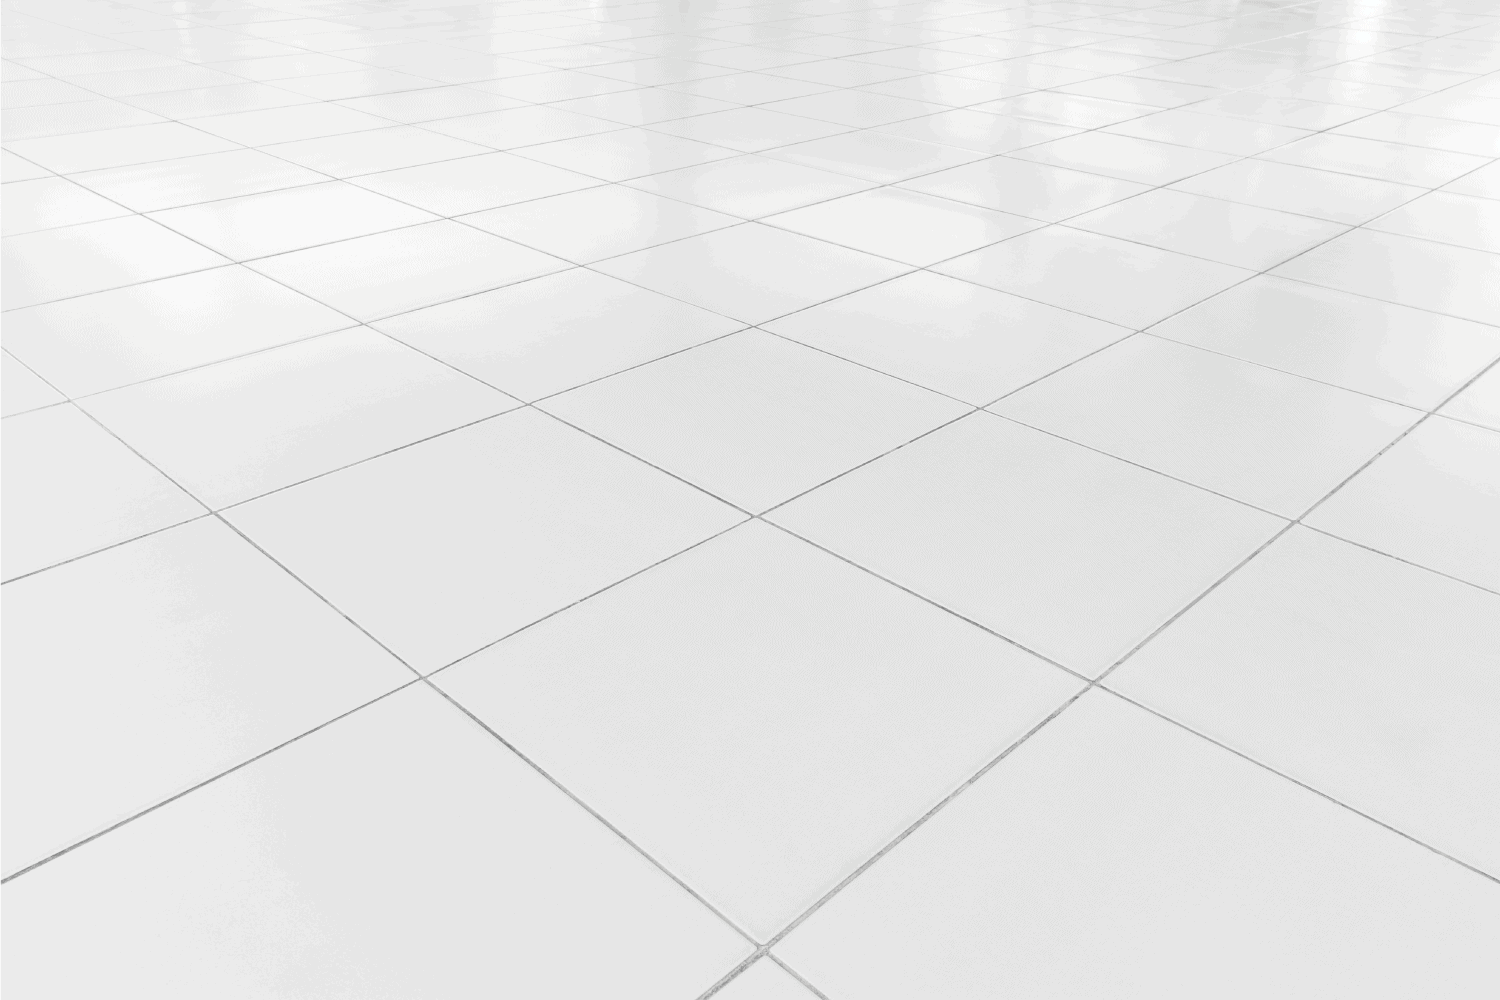 White tile floor clean condition with grid line